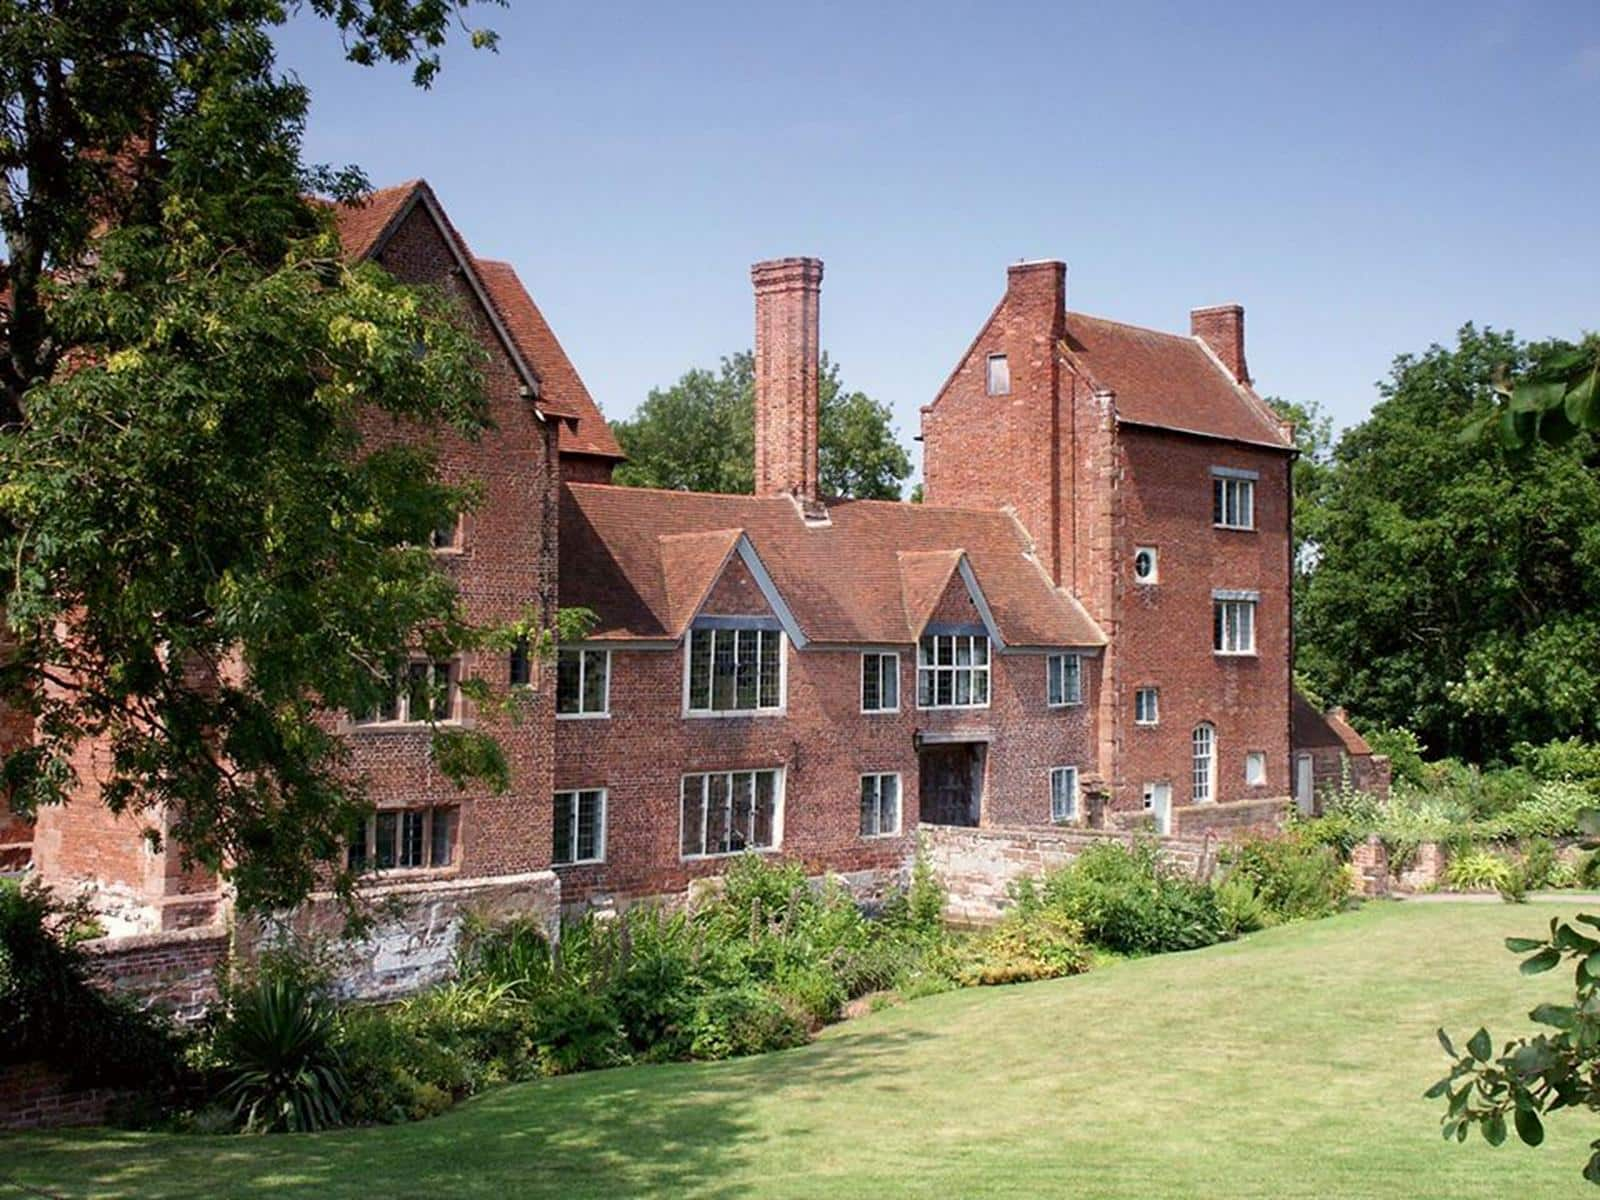 Harvington-hall-kidderminster-01